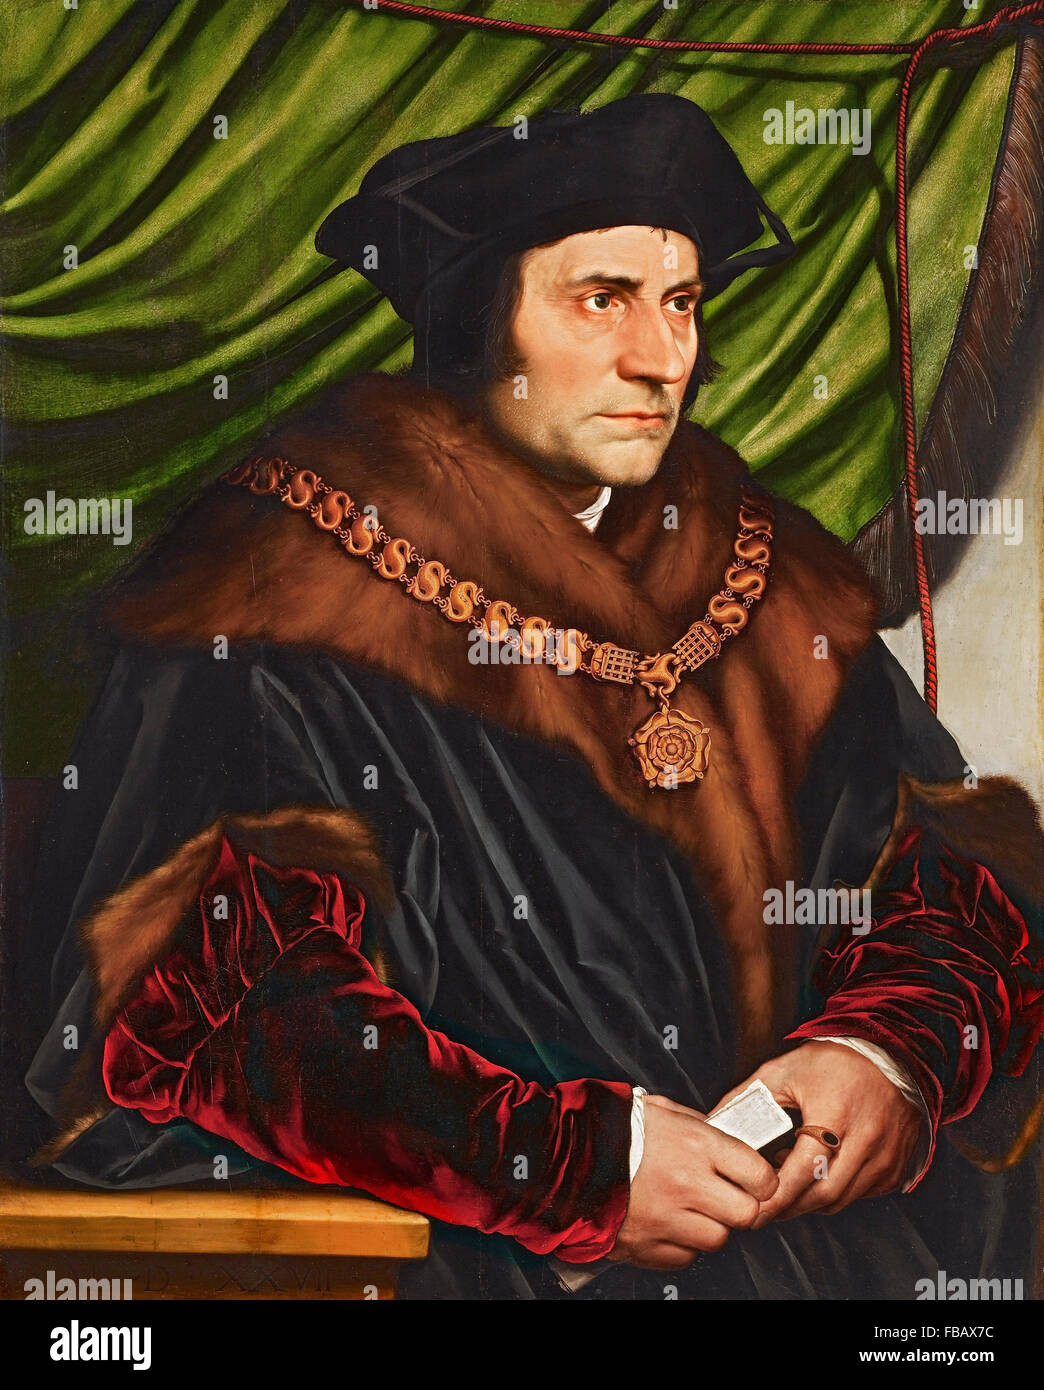 Thomas More (1478-1535). Portrait of Sir Thomas More by Hans Holbein the Younger, 1527 - Stock Image